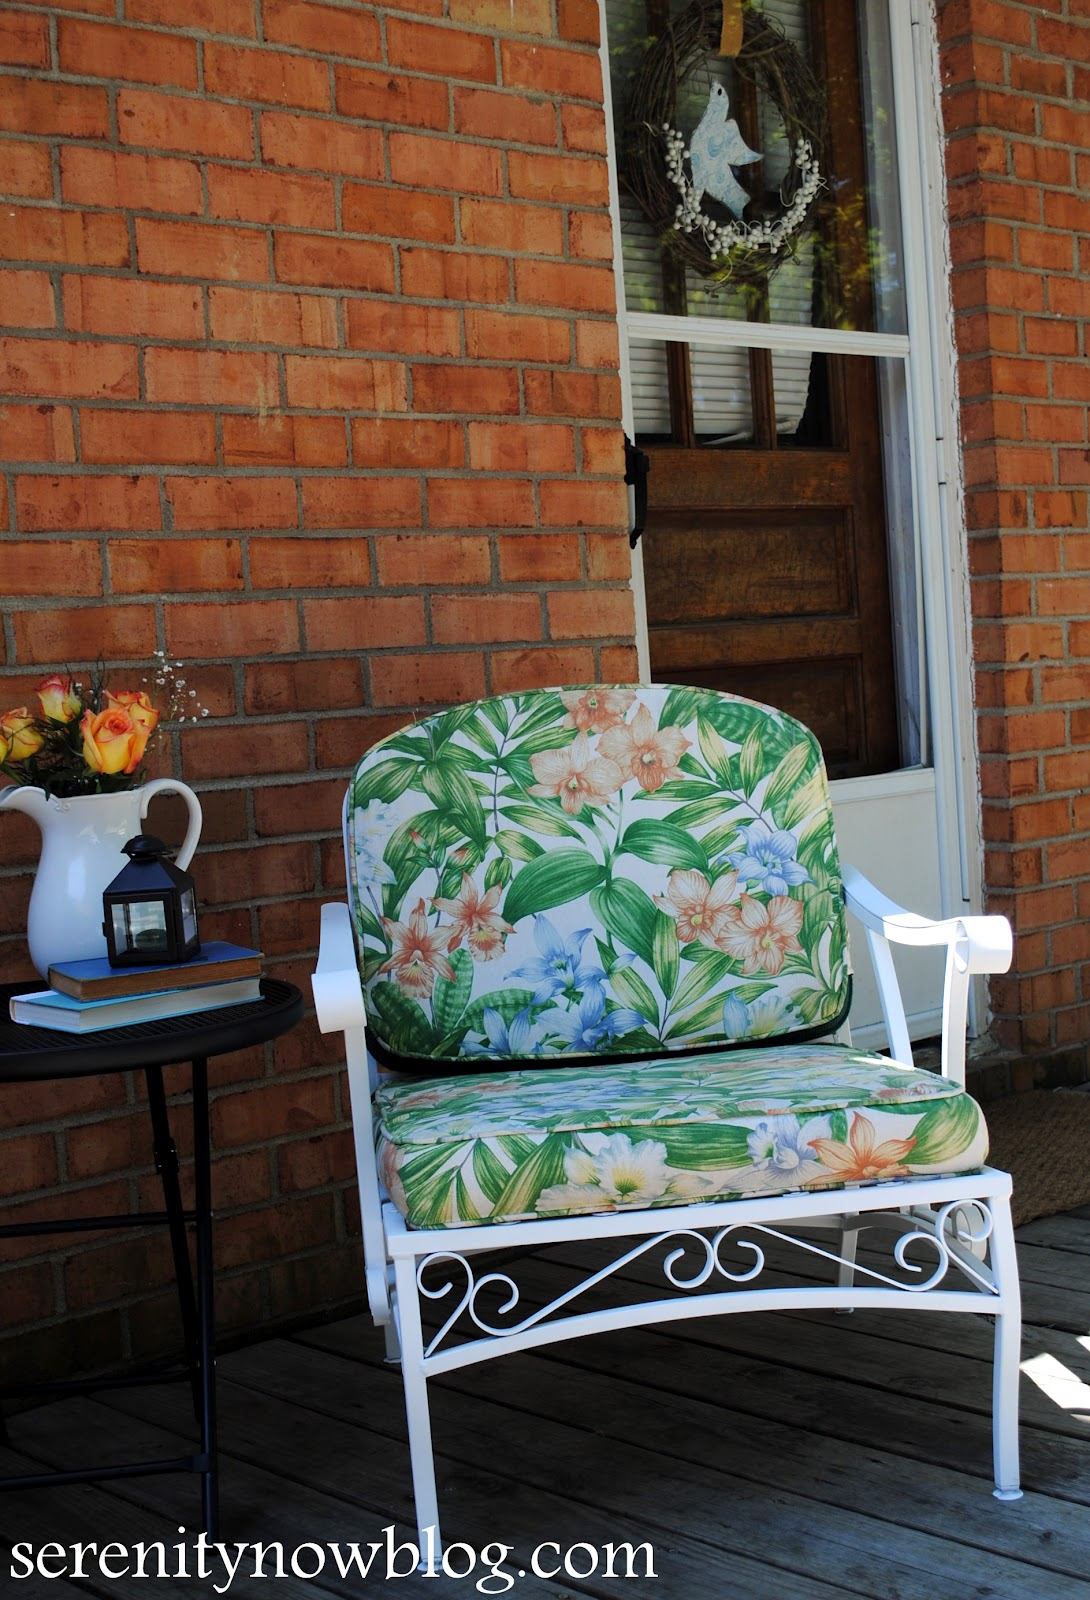 How To Clean And Paint Vintage Patio Furniture From Serenity Now